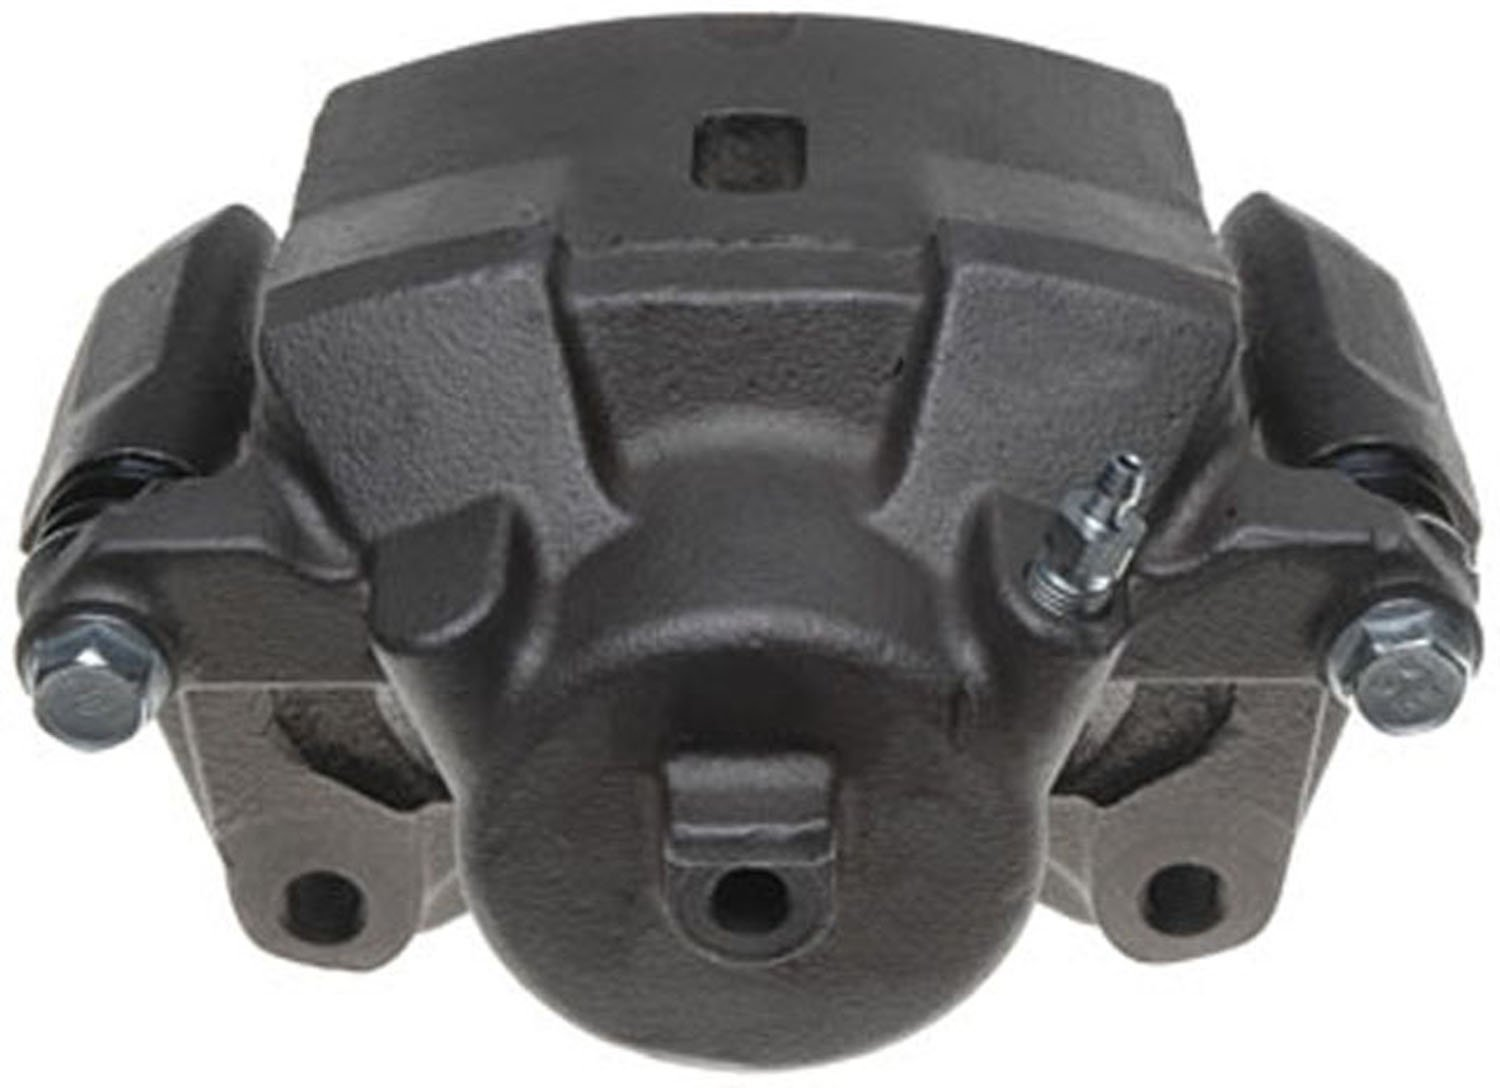 ACDelco 18FR2215 Professional Front Disc Brake Caliper Assembly without Pads (Friction Ready Non-Coated), Remanufactured